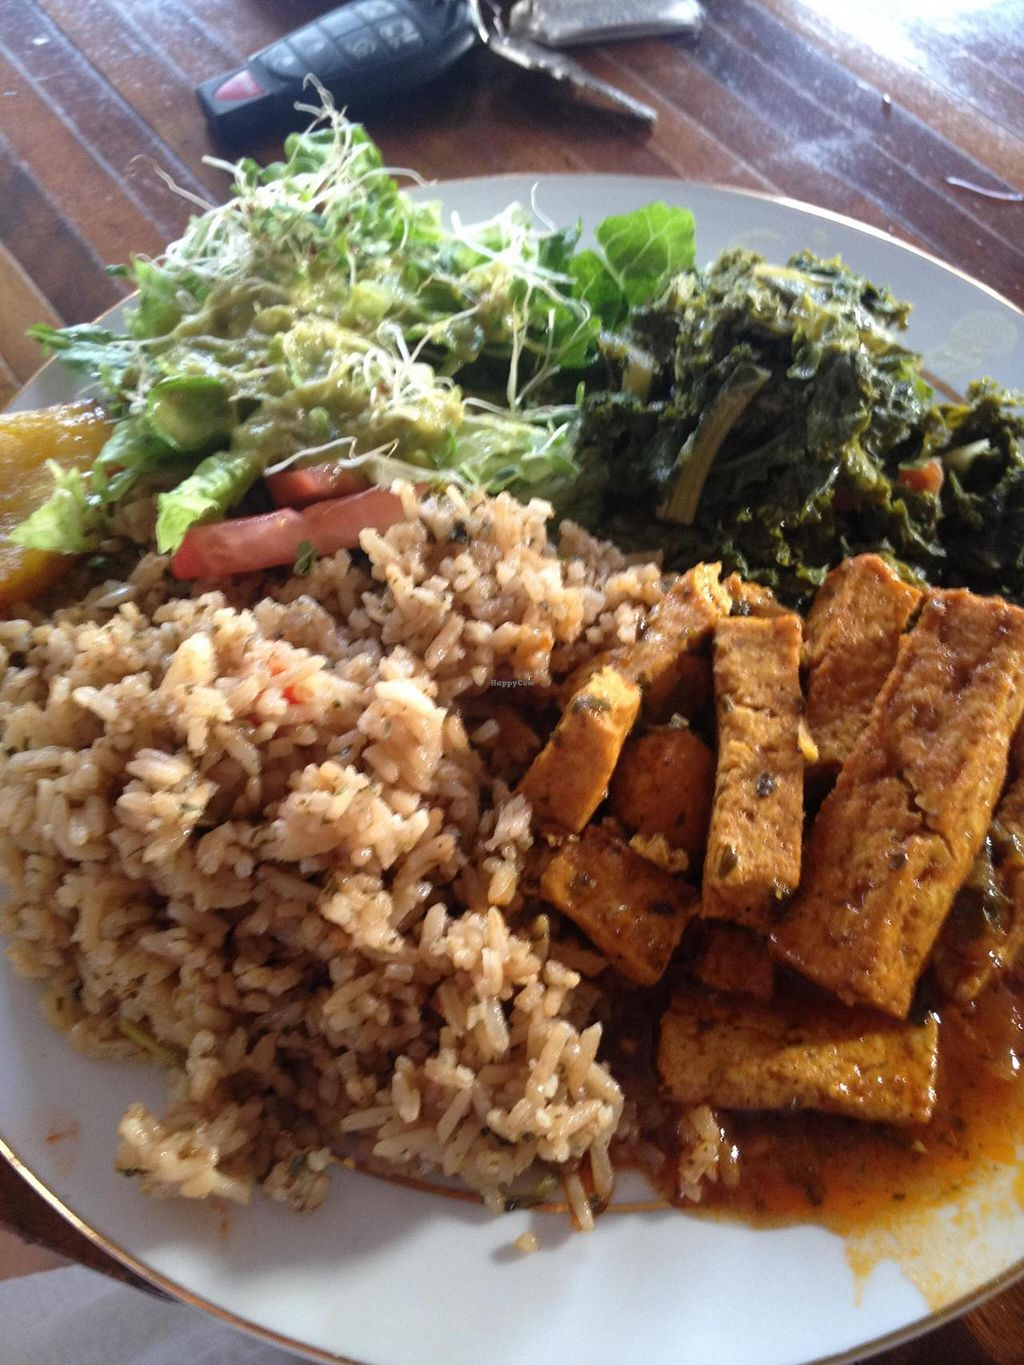 """Photo of Ital in Paradise  by <a href=""""/members/profile/VeggieHeather"""">VeggieHeather</a> <br/>Our meal -- spicy tofu, kale, coconut fried rice, and salad <br/> July 6, 2014  - <a href='/contact/abuse/image/48459/73329'>Report</a>"""